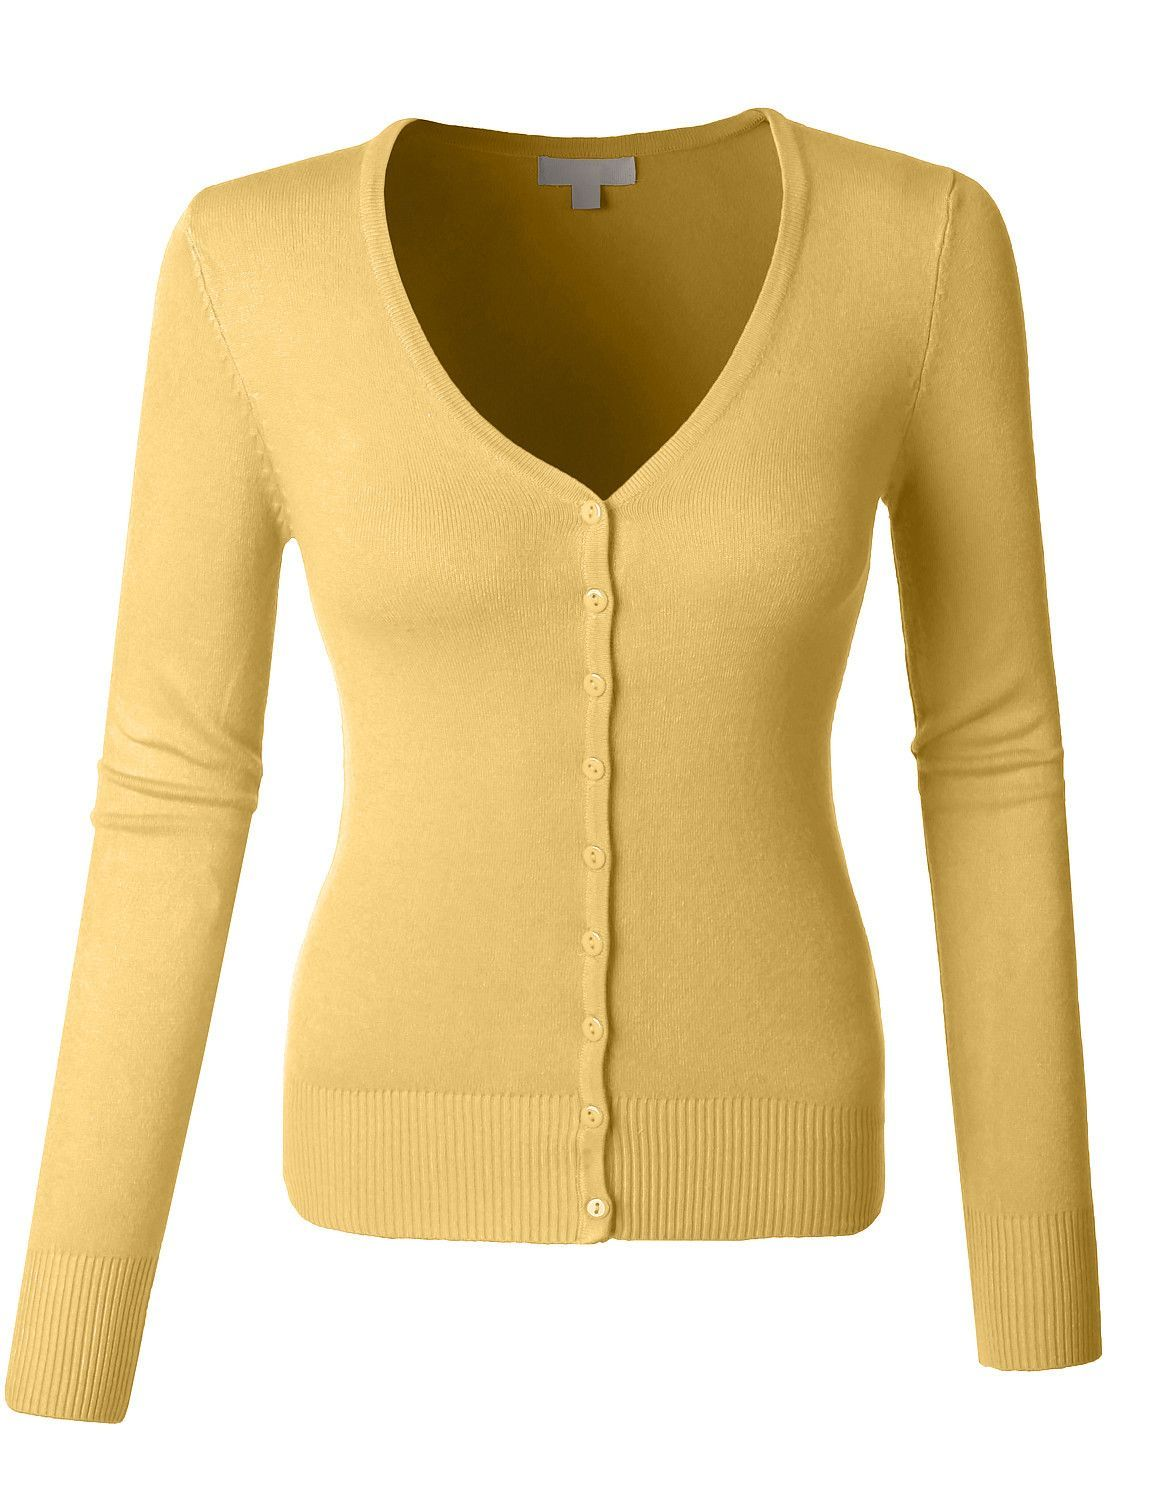 Womens Soft Fitted Basic Cardigan Sweater | Stylish outfits and ...